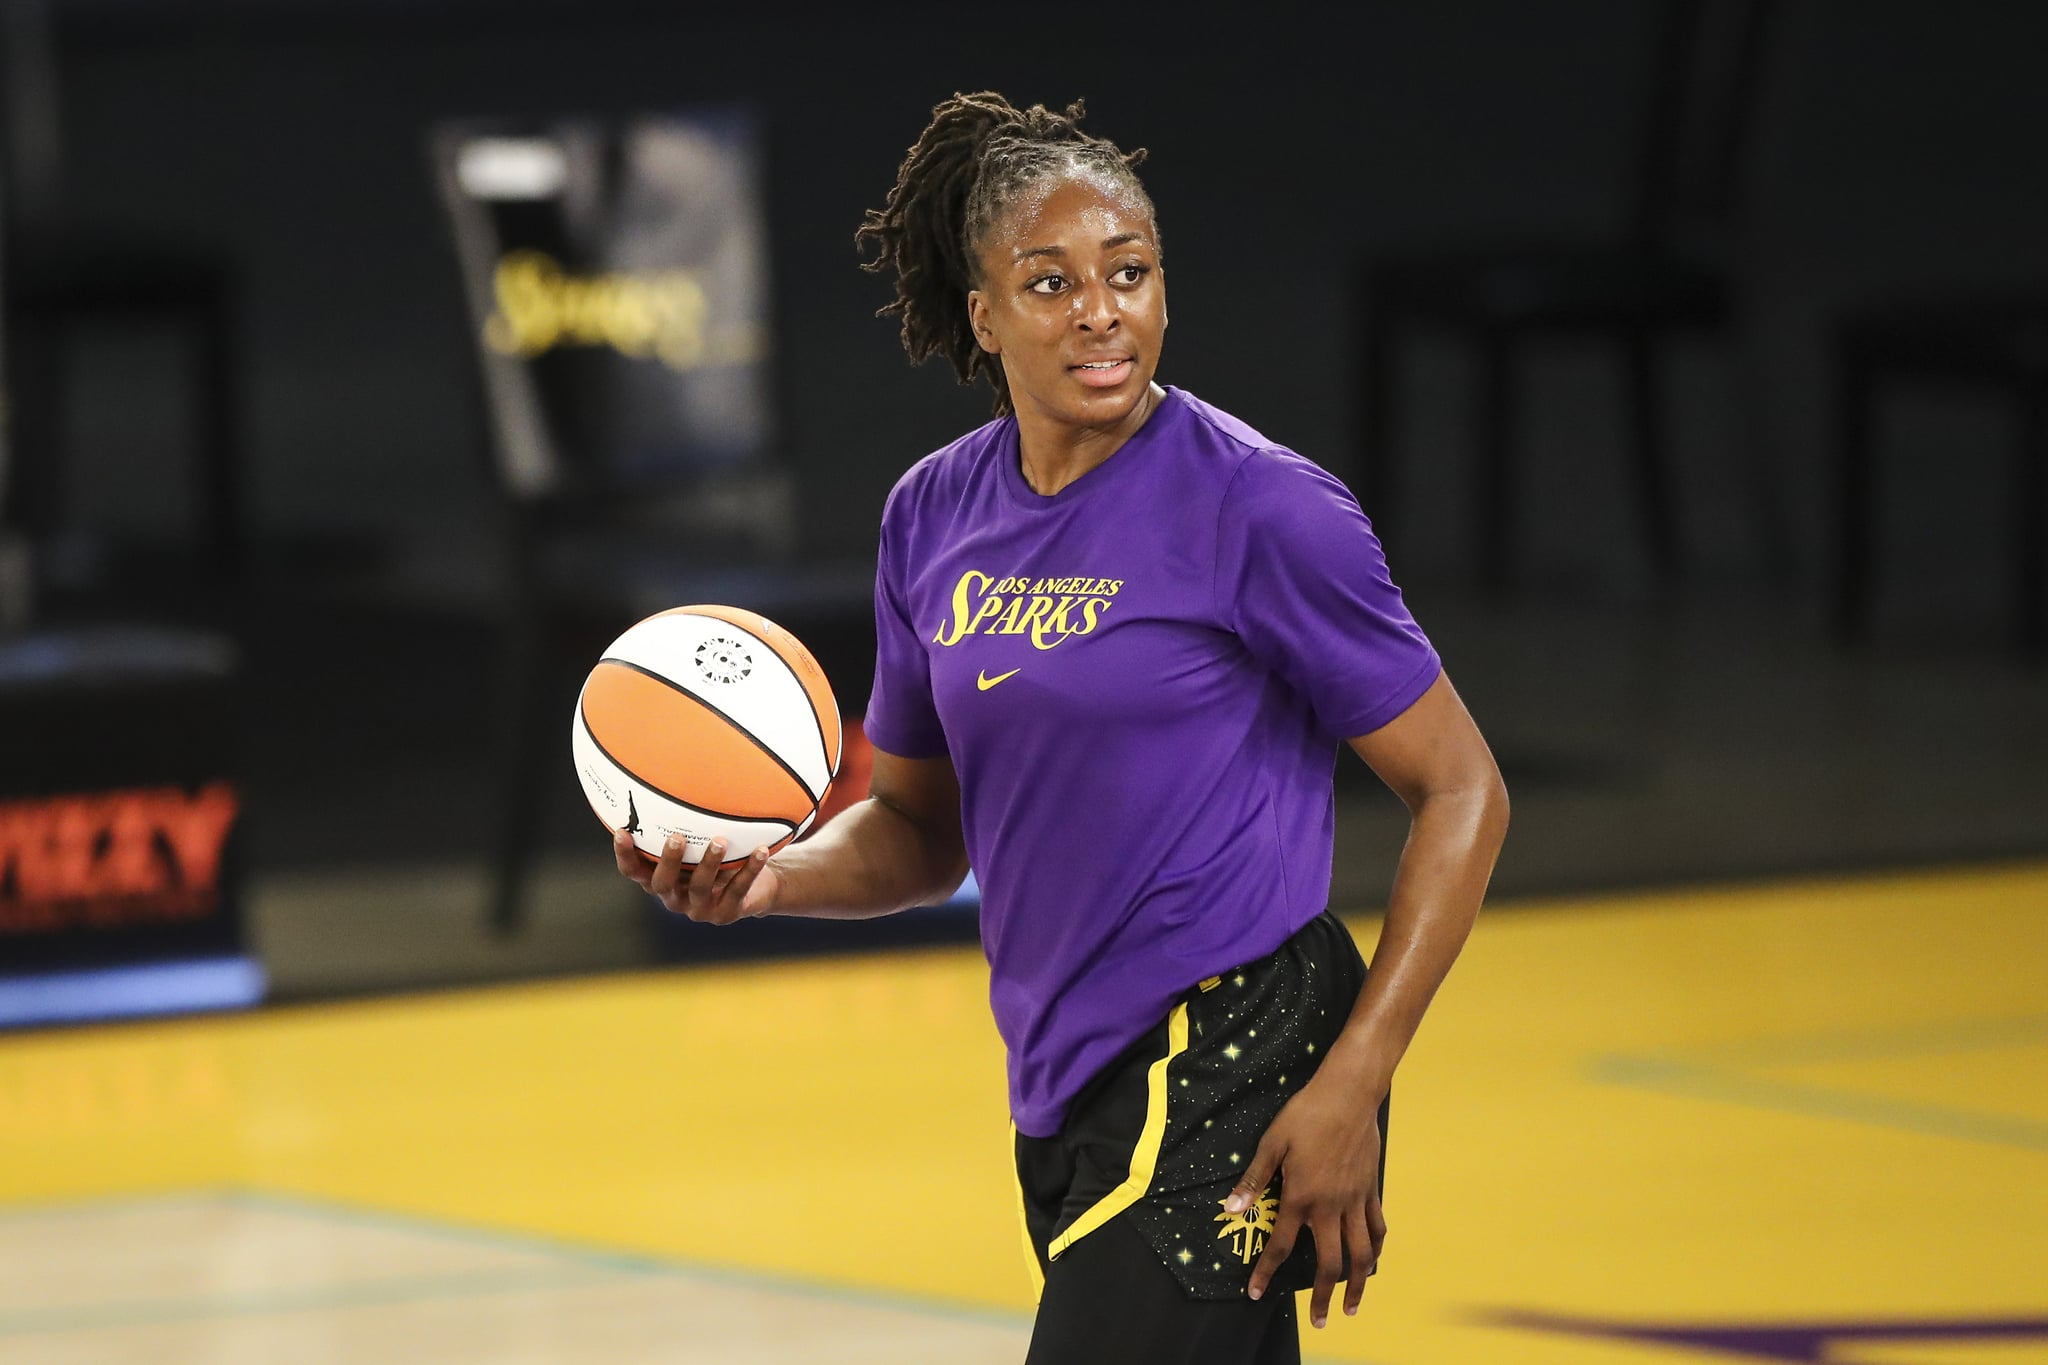 LOS ANGELES, CALIFORNIA - MAY 14: Forward Nneka Ogwumike #30 of the Los Angeles Sparks warms up before the game against the Dallas Wings at Los Angeles Convention Center on May 14, 2021 in Los Angeles, California. NOTE TO USER: User expressly acknowledges and agrees that, by downloading and or using this photograph, User is consenting to the terms and conditions of the Getty Images License Agreement. (Photo by Meg Oliphant/Getty Images)